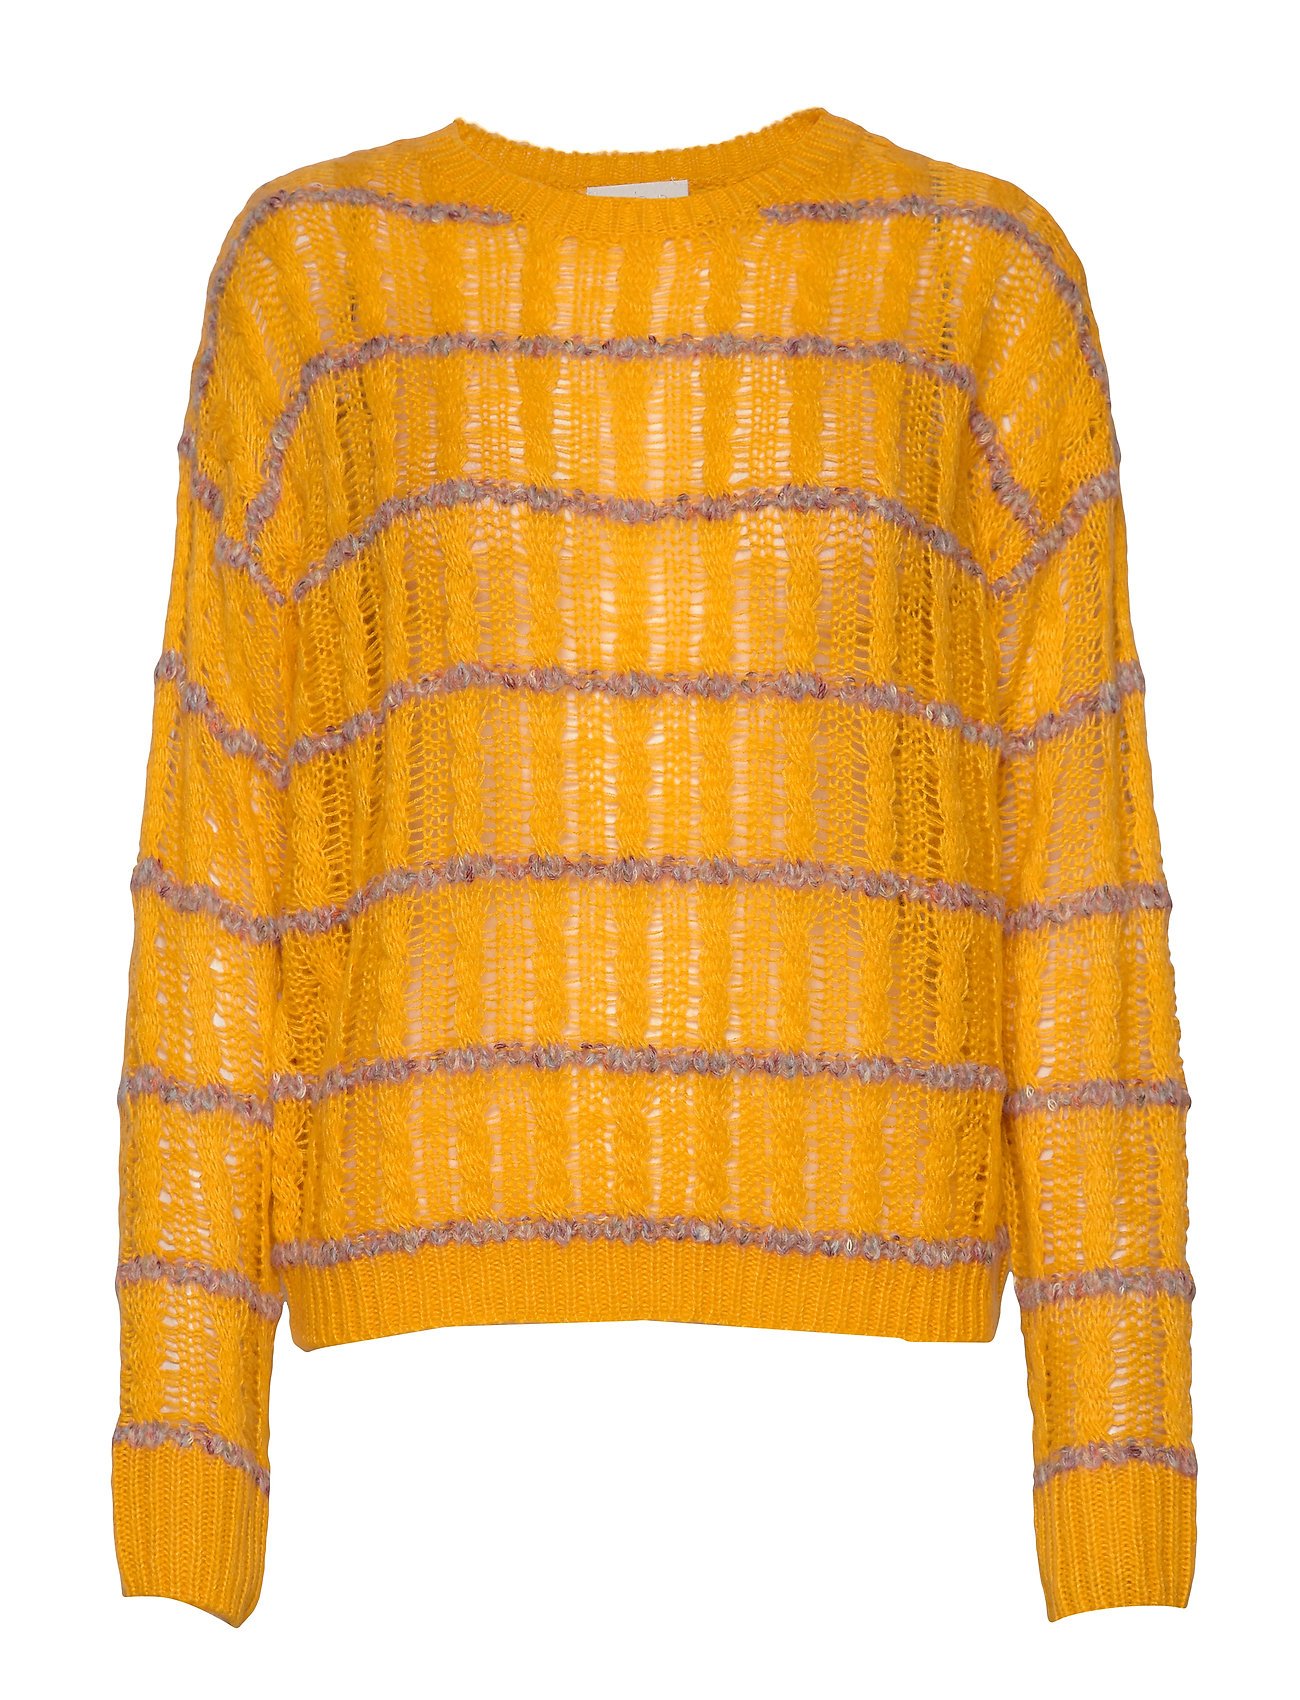 Minus Inas knit pullover - SUNFLOWER